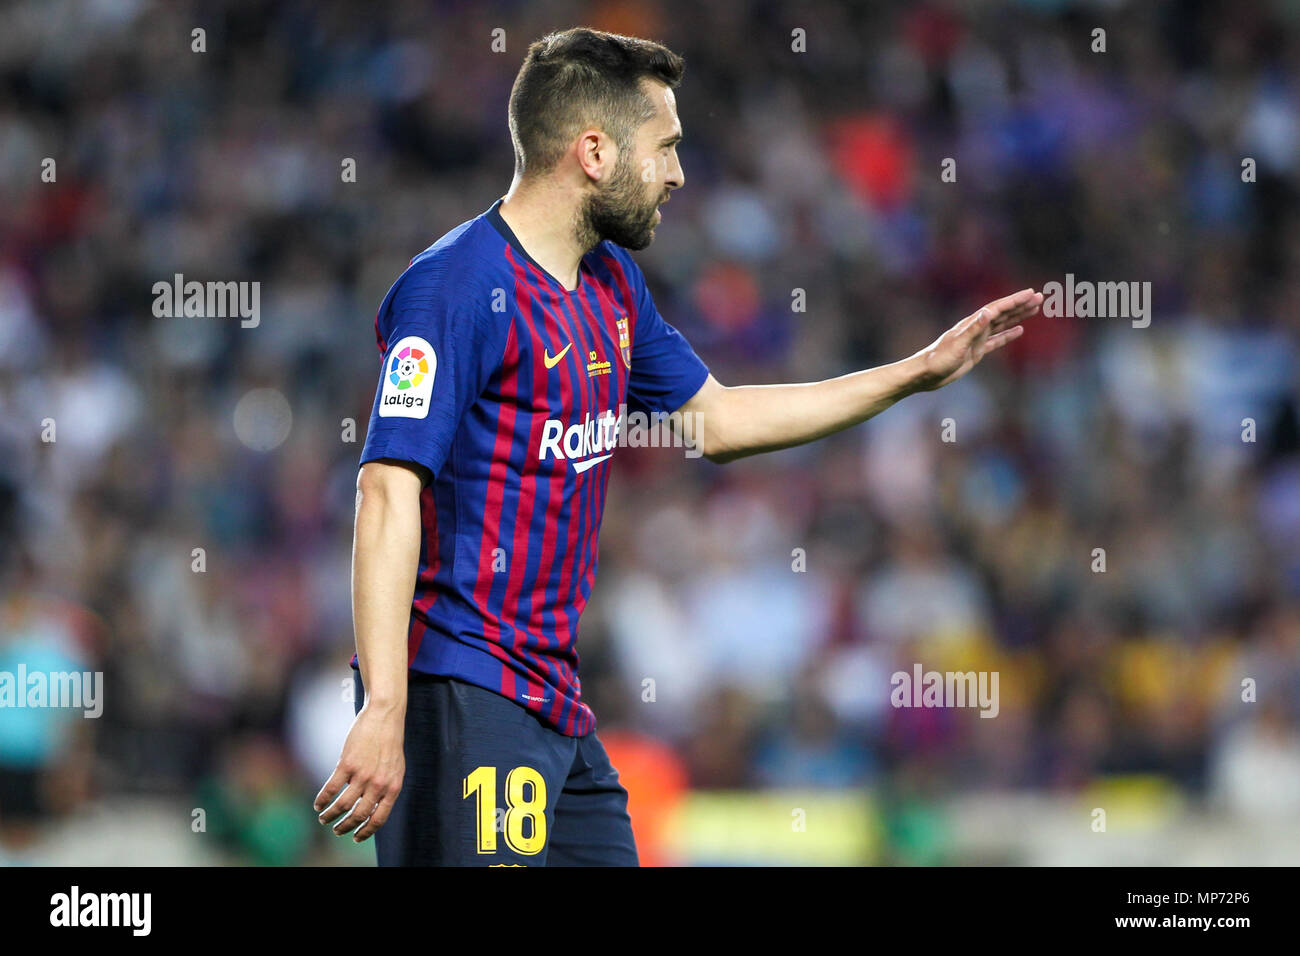 Barcelona, 20th May:  Jordi Alba of FC Barcelona during the 2017/2018 LaLiga Santander Round 38 game between FC Barcelona and Real Sociedad at Camp Nou on May 20, 2018 in Barcelona, Spain. - Stock Image